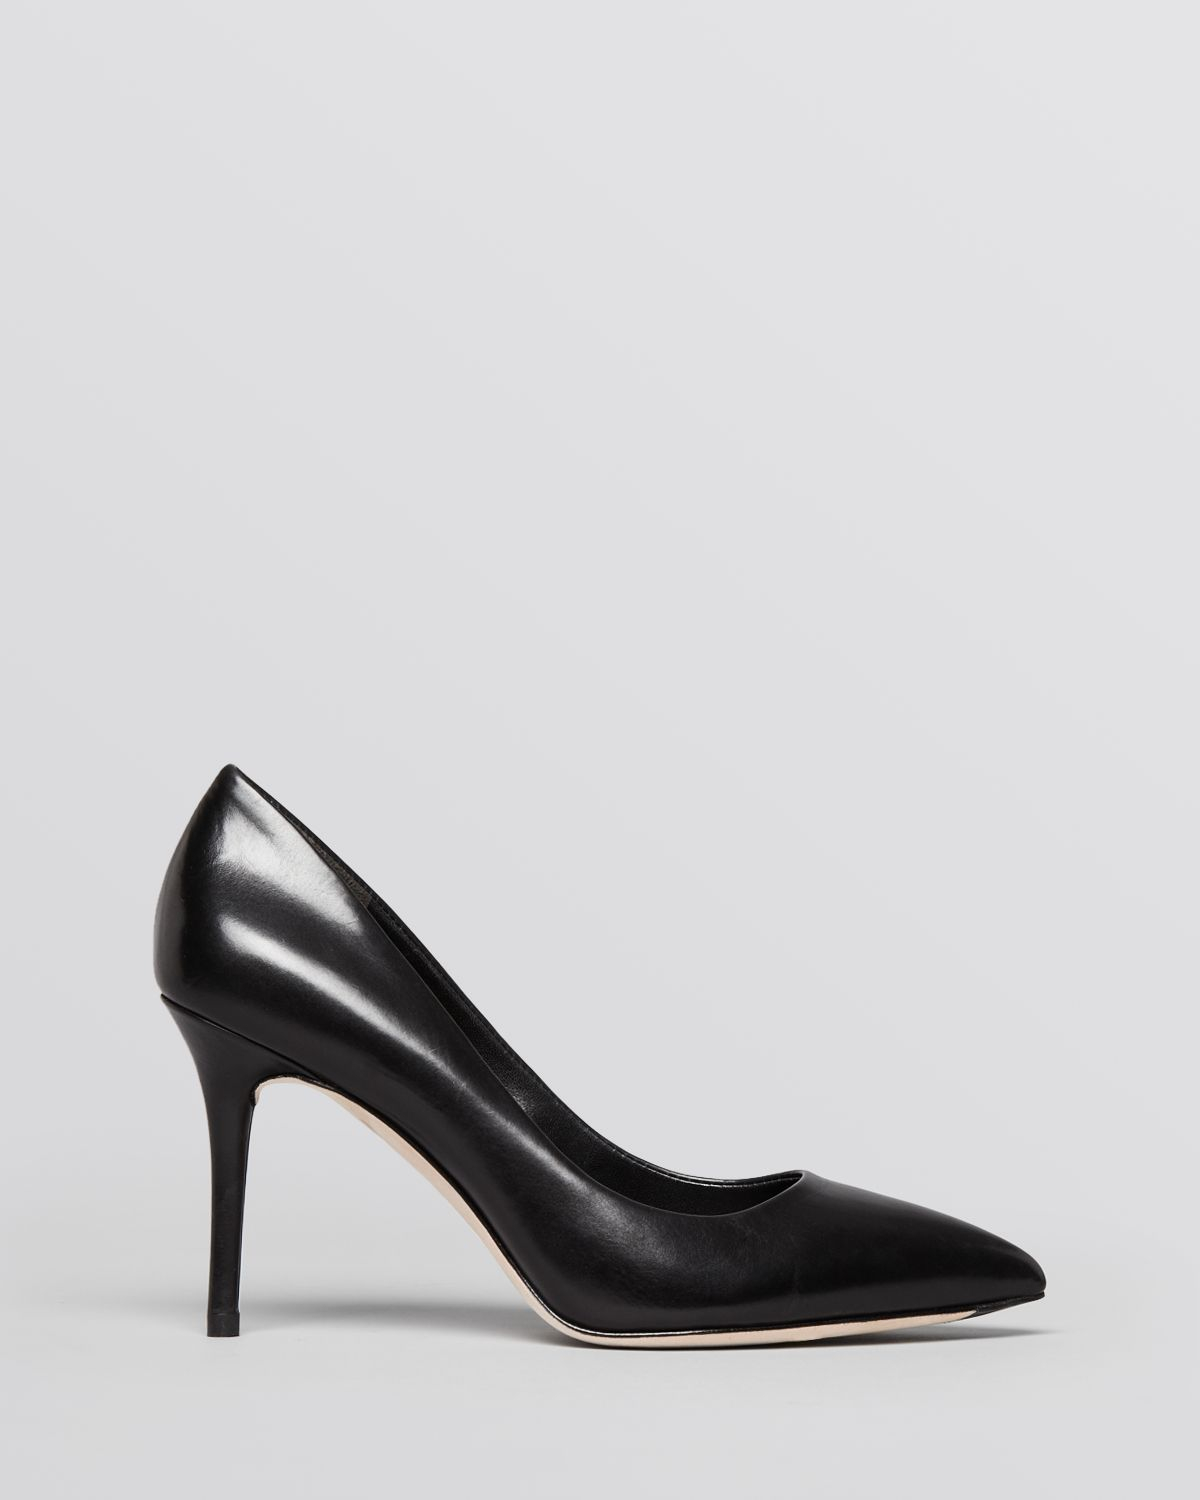 Brian Atwood Suede Pointed-Toe Pumps good selling sale online jT7pBF4